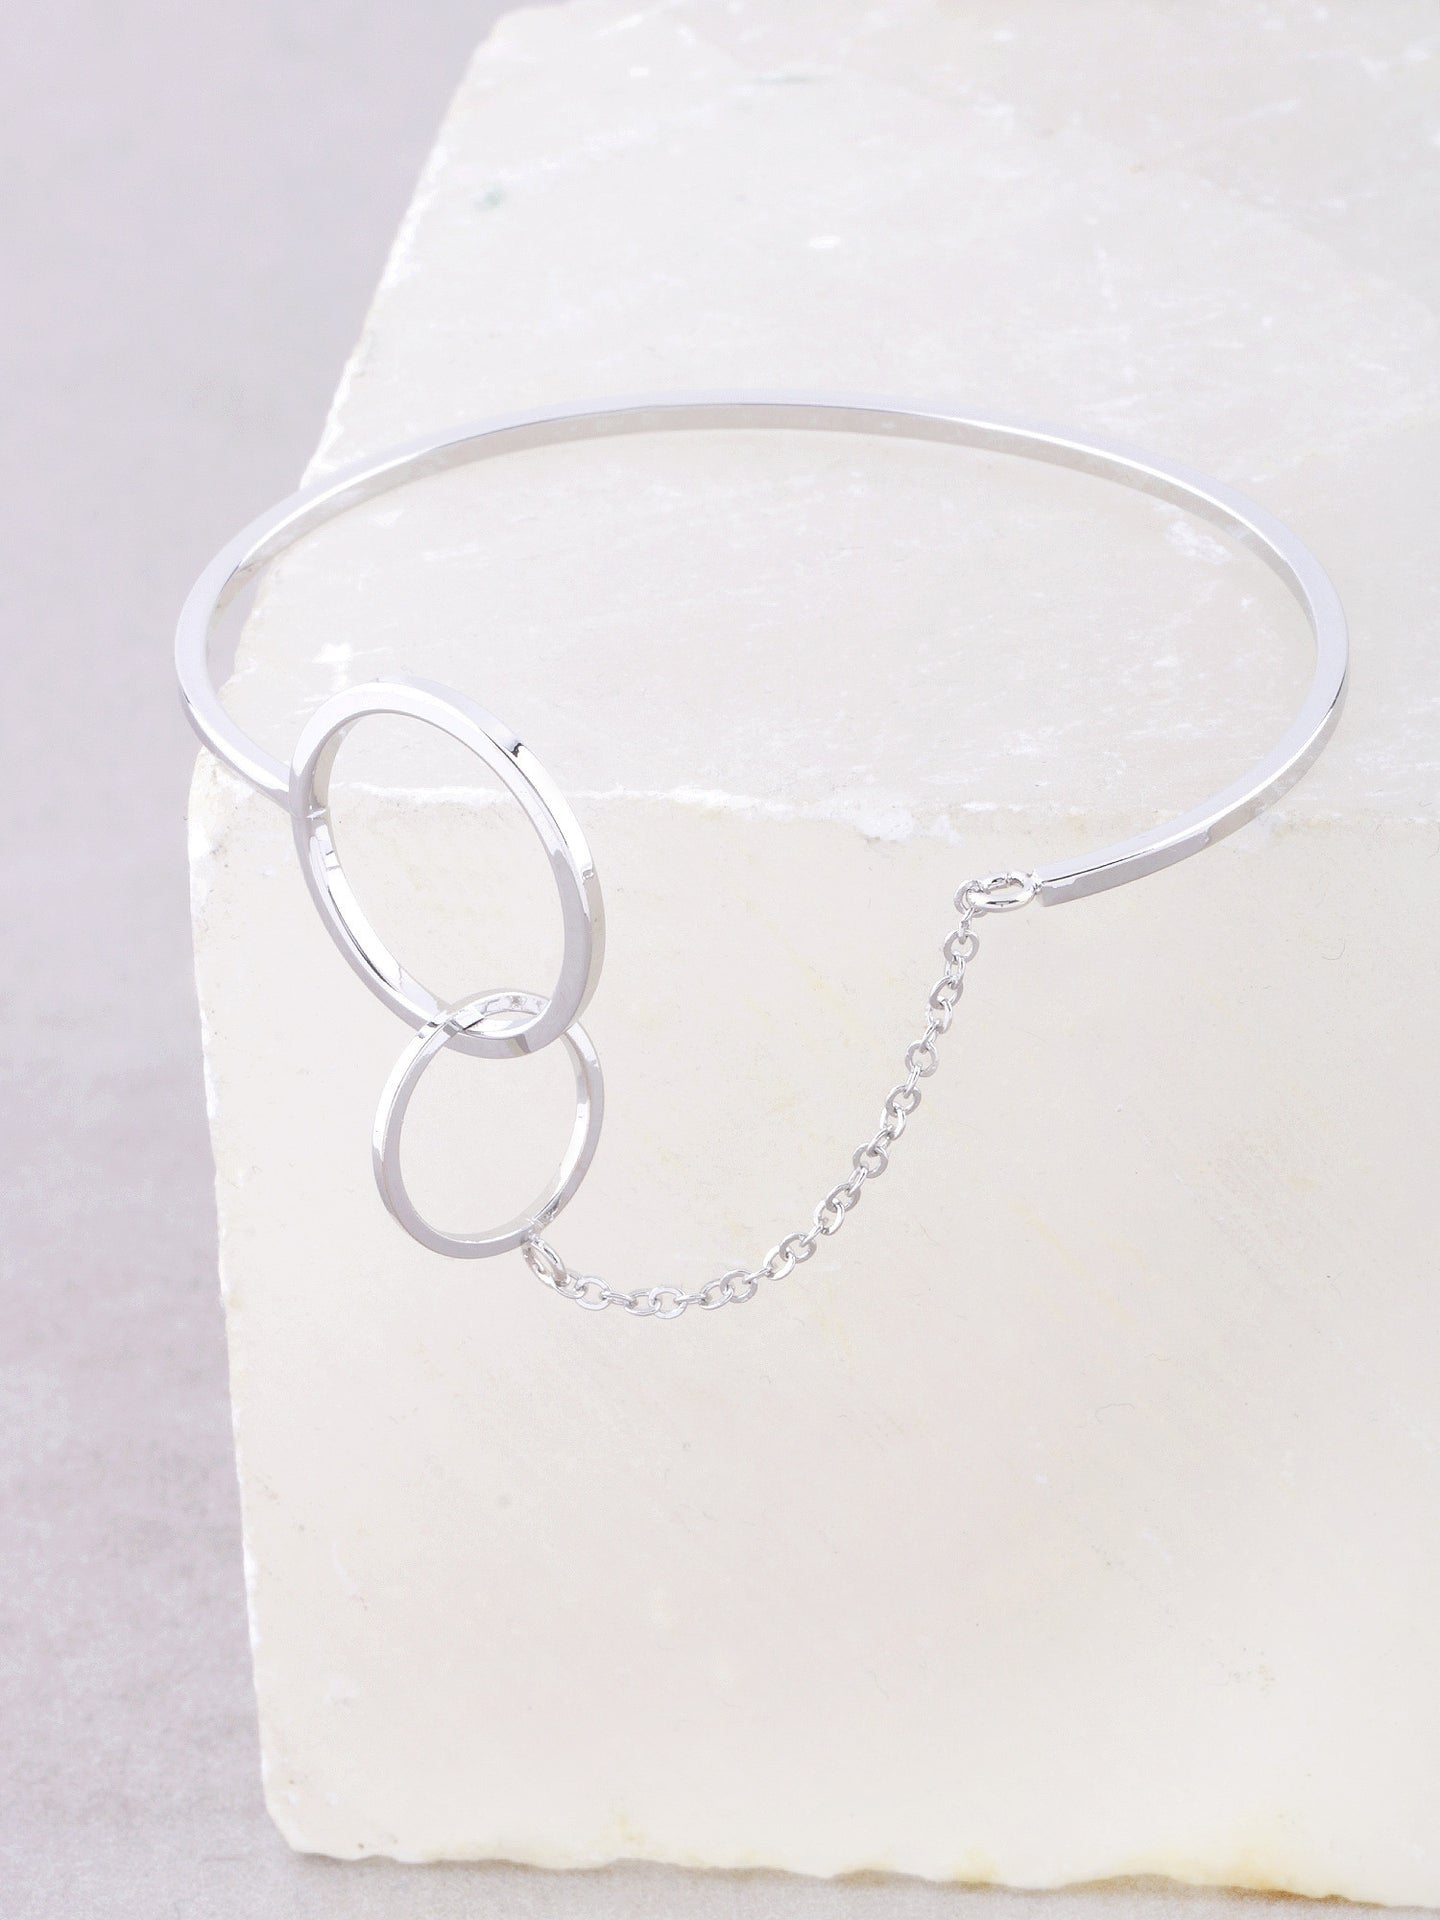 Loop Chain Bracelet Anarchy Street Silver